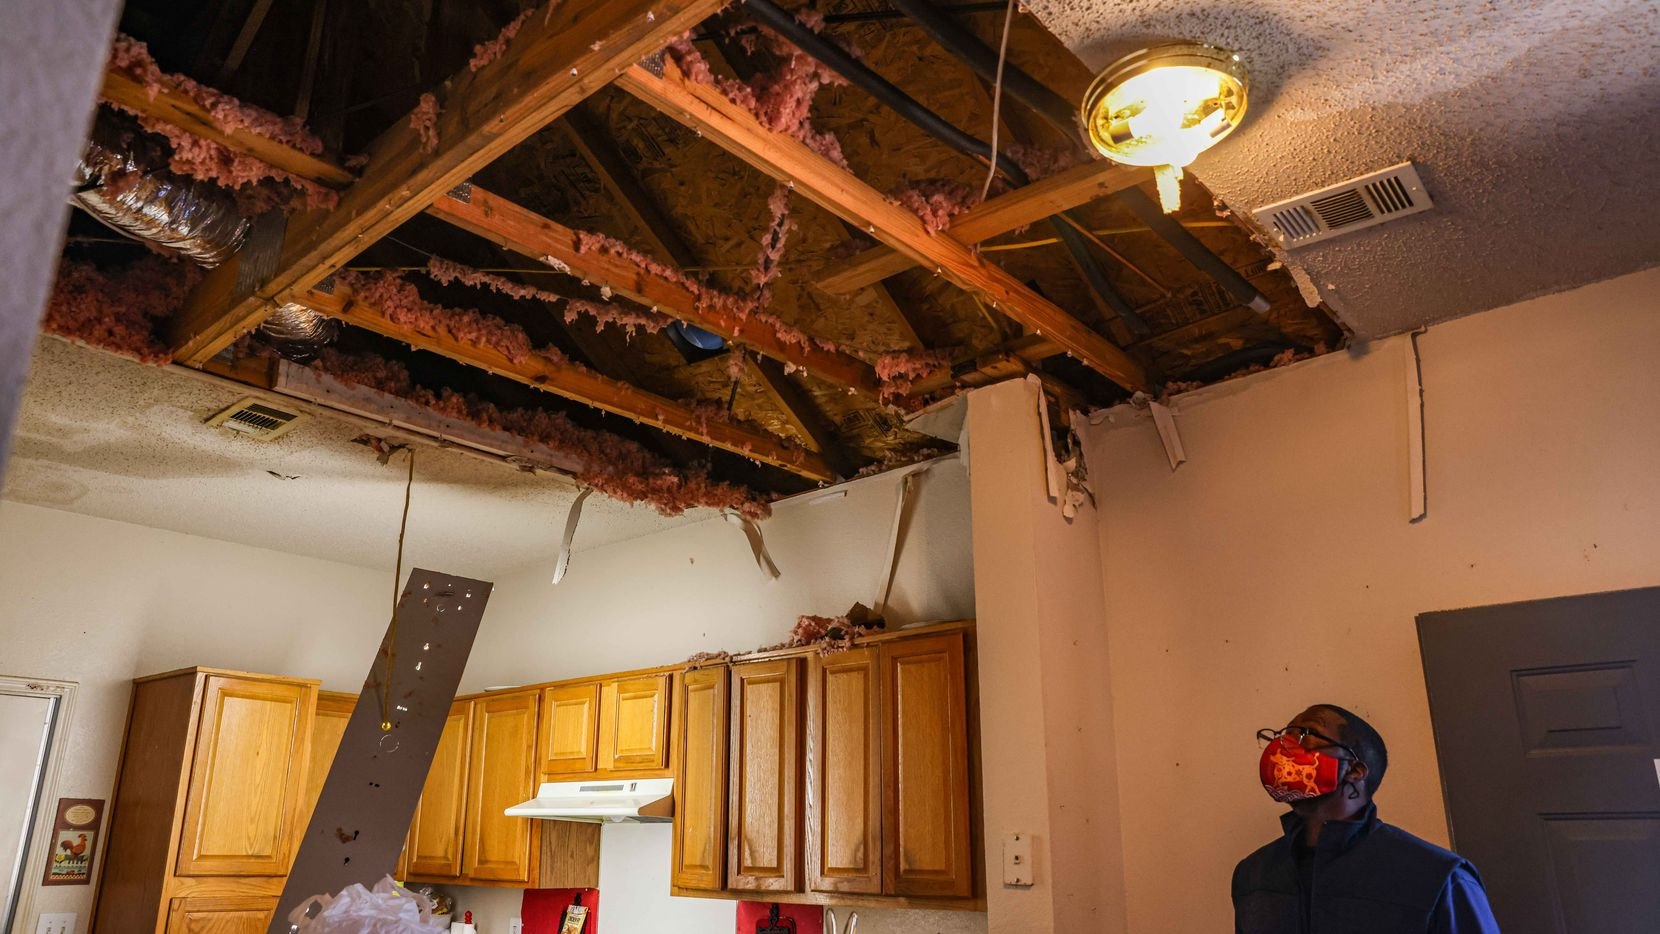 Benny Henderson, 53, takes a look at his mother apartment ceiling at Westmoreland Heights in Dallas on Saturday, where it collapsed over the kitchen due to water damage after the snow storm Uri hit Dallas this week. In Mesquite, low-income homeowners are eligible for financial assistance for home repairs.